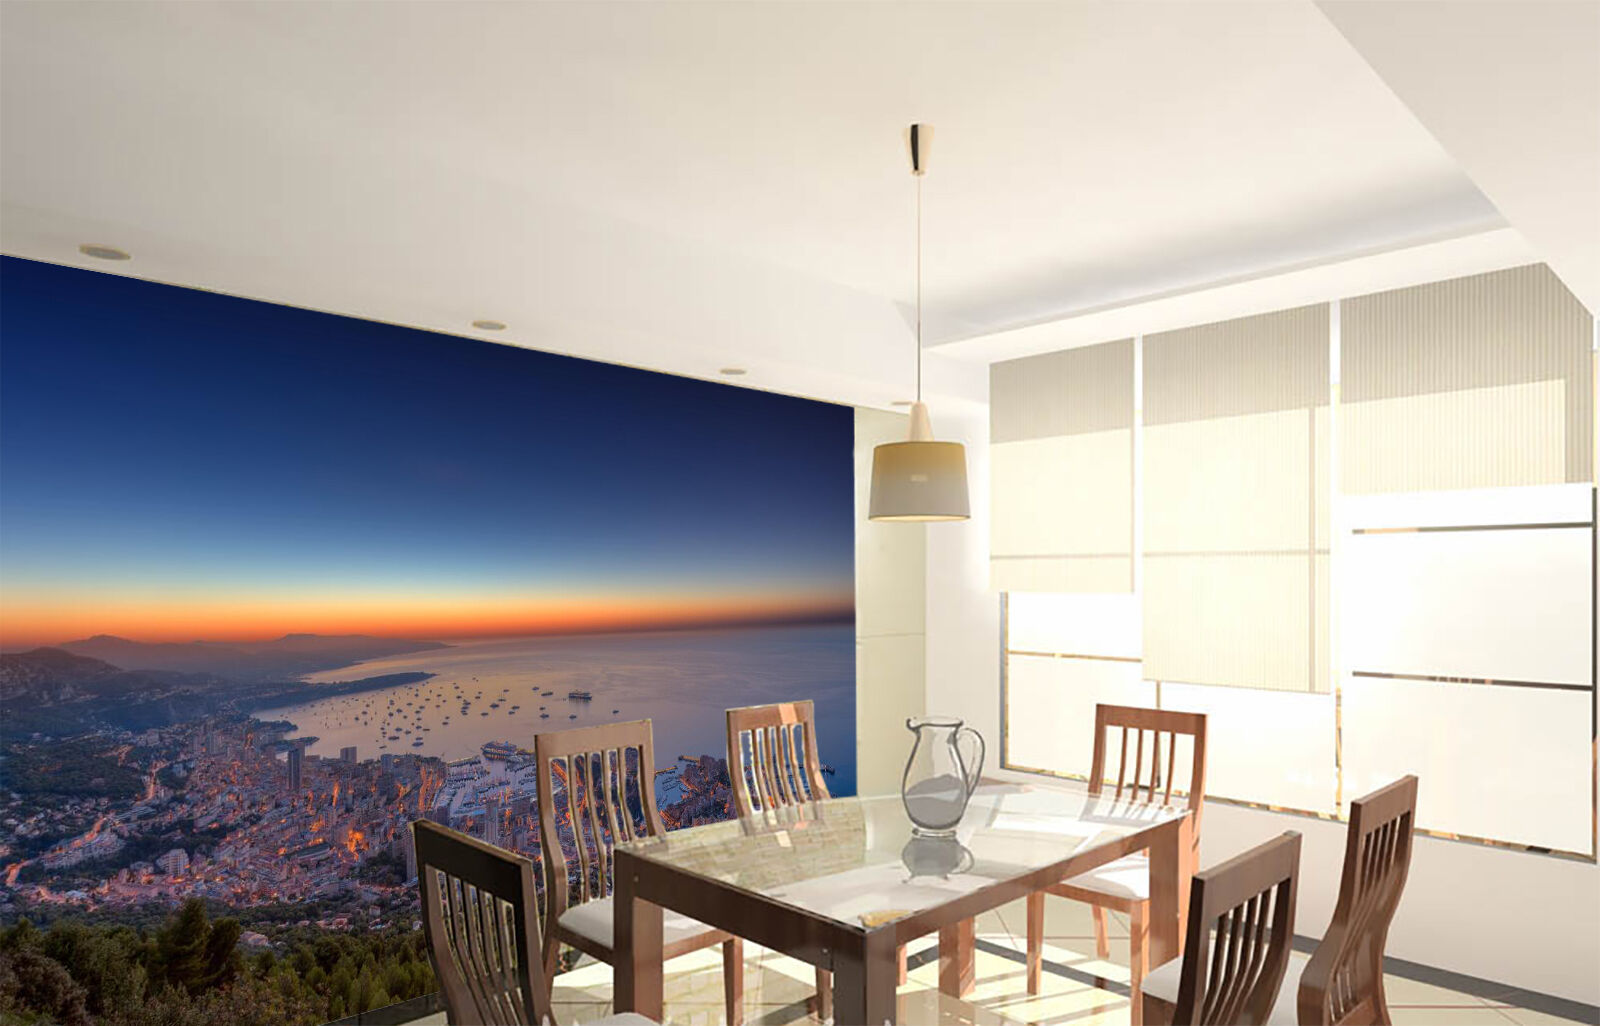 3D Morining Coastal City 772 Wall Paper Wall Print Decal Wall Deco Indoor Wall